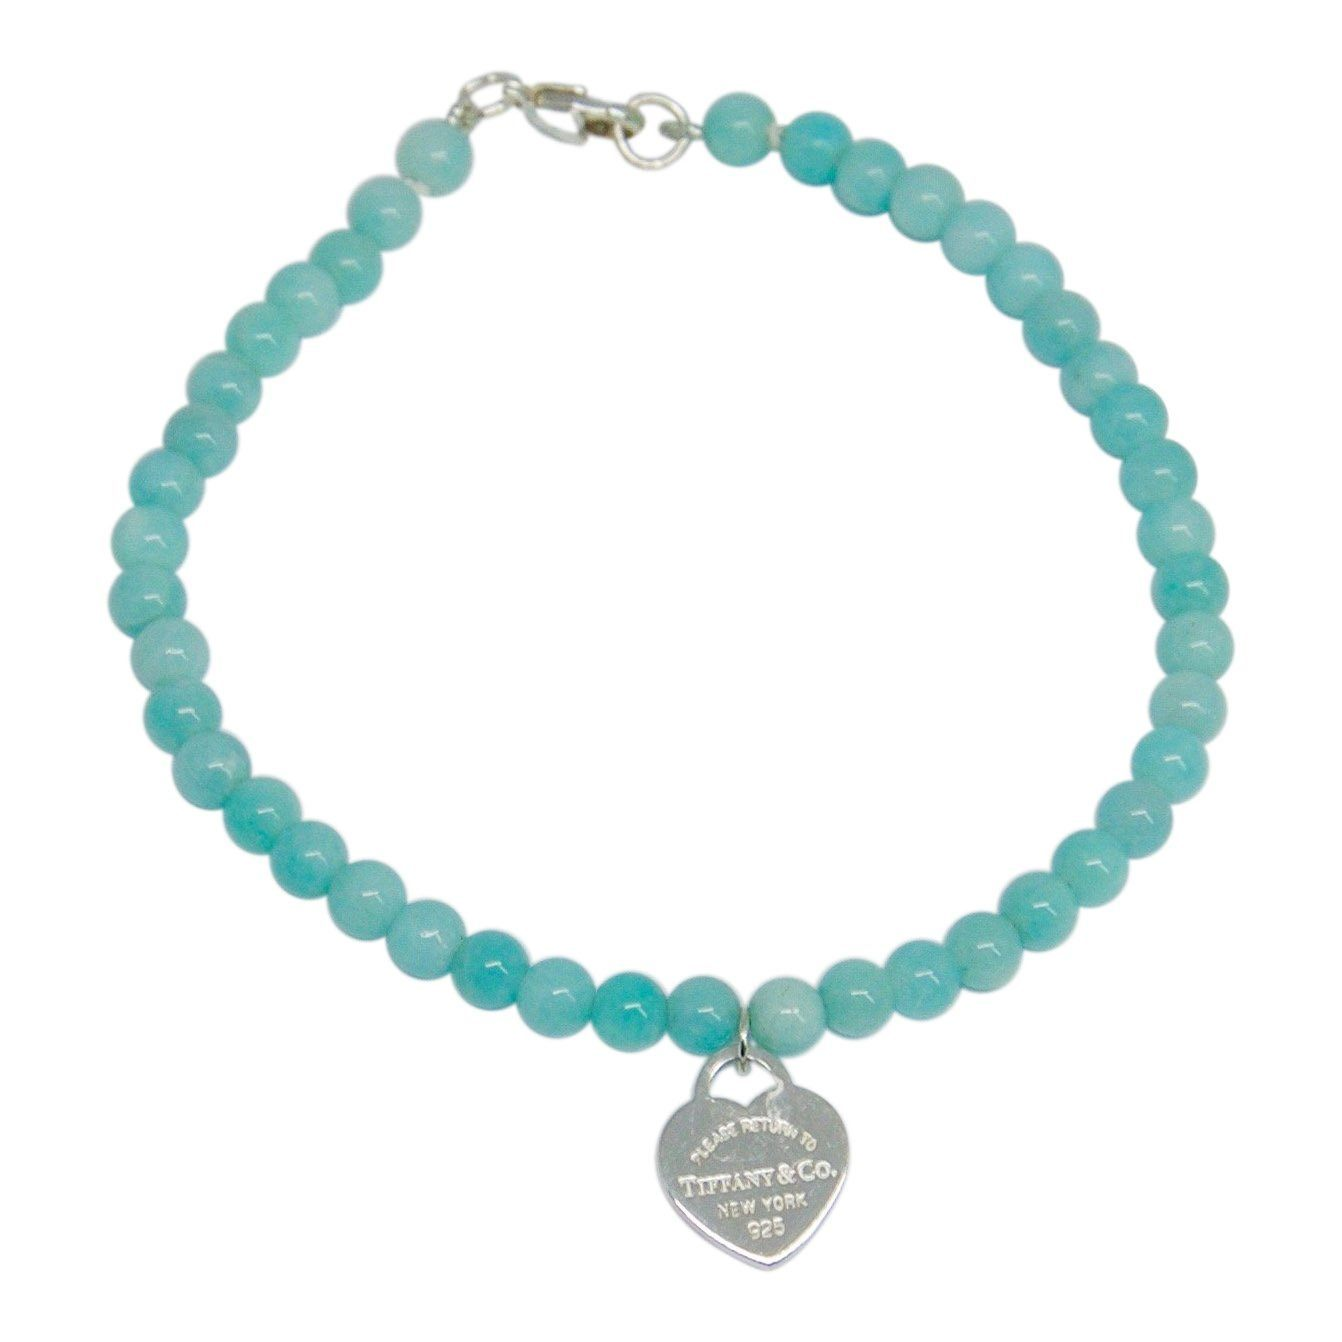 9e5edb3b2fee6 Tiffany & Co. Return to Tiffany Mini Heart Tag Bead Bracelet